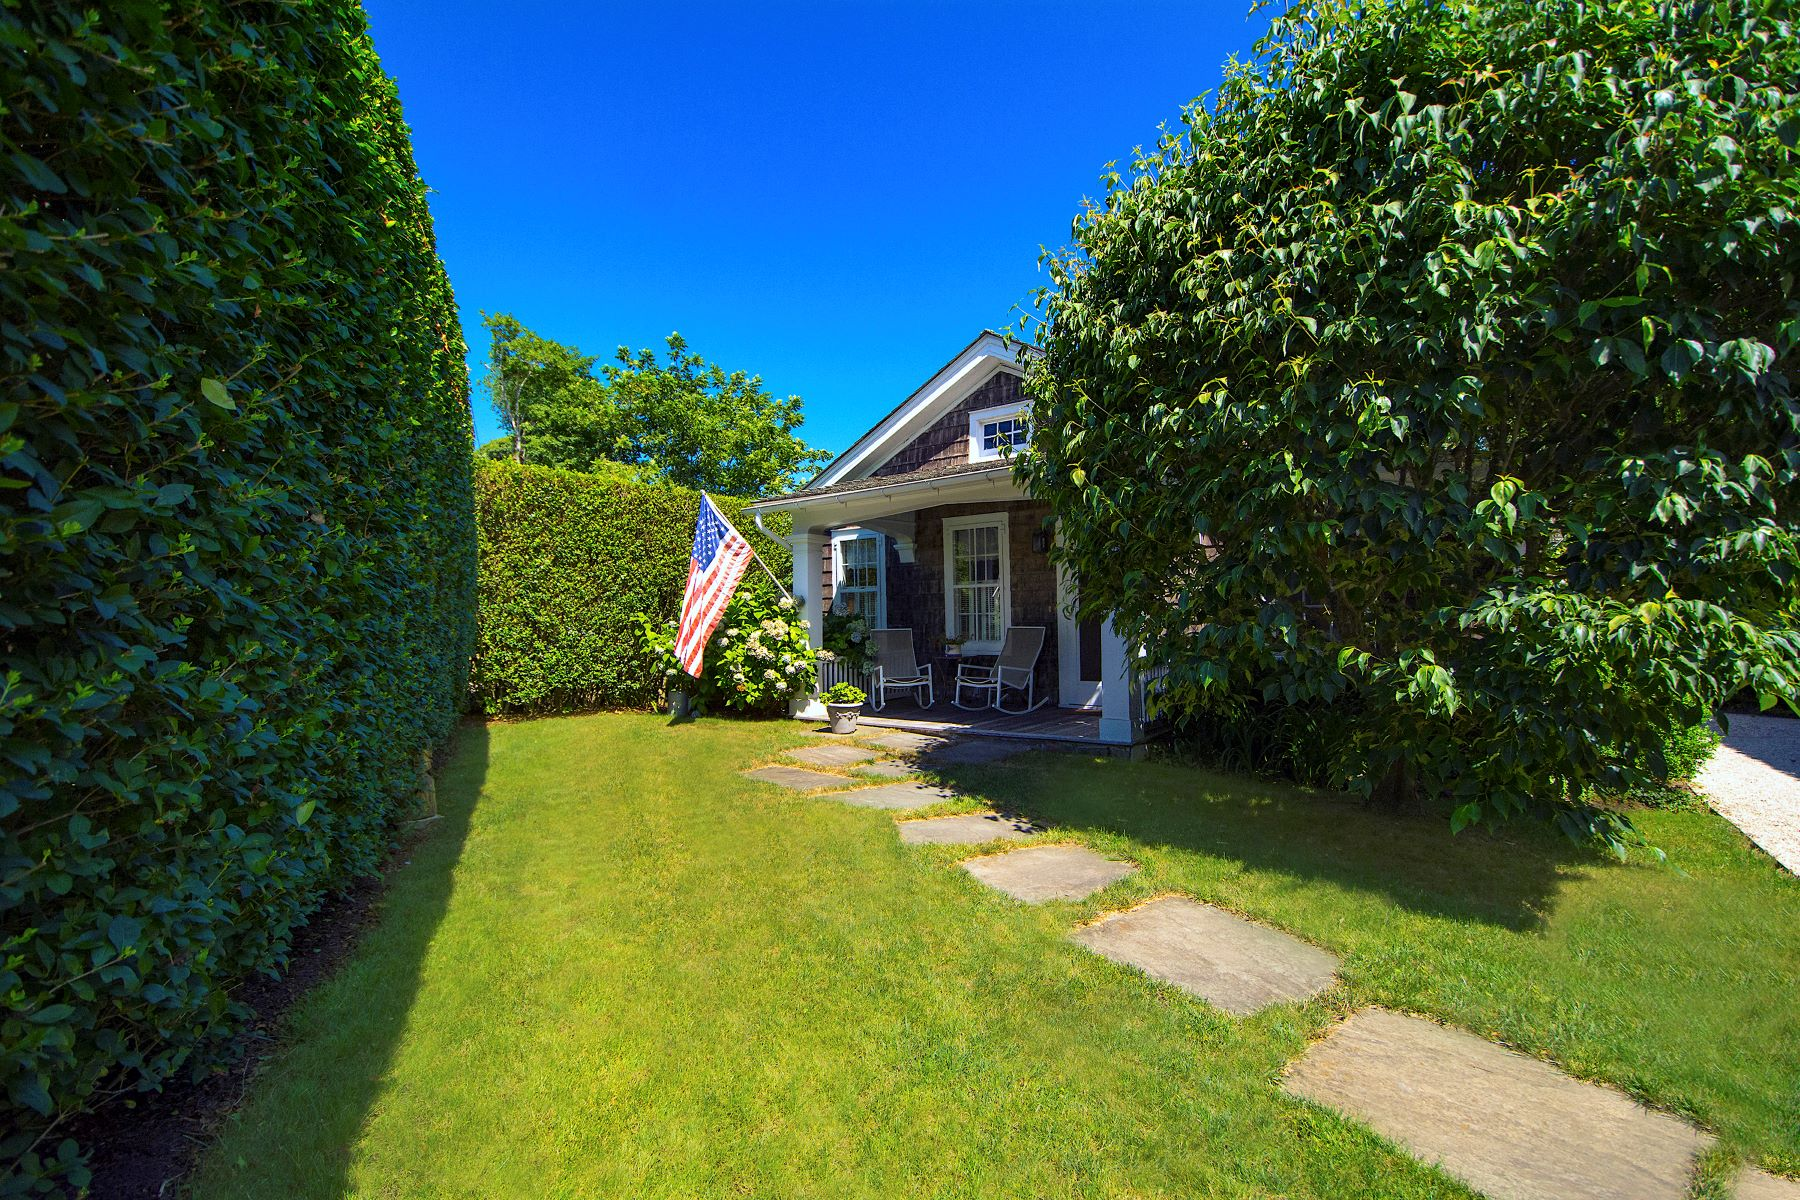 Single Family Homes for Sale at Historic Cottage South of the Highway 58 Church Lane Bridgehampton, New York 11932 United States